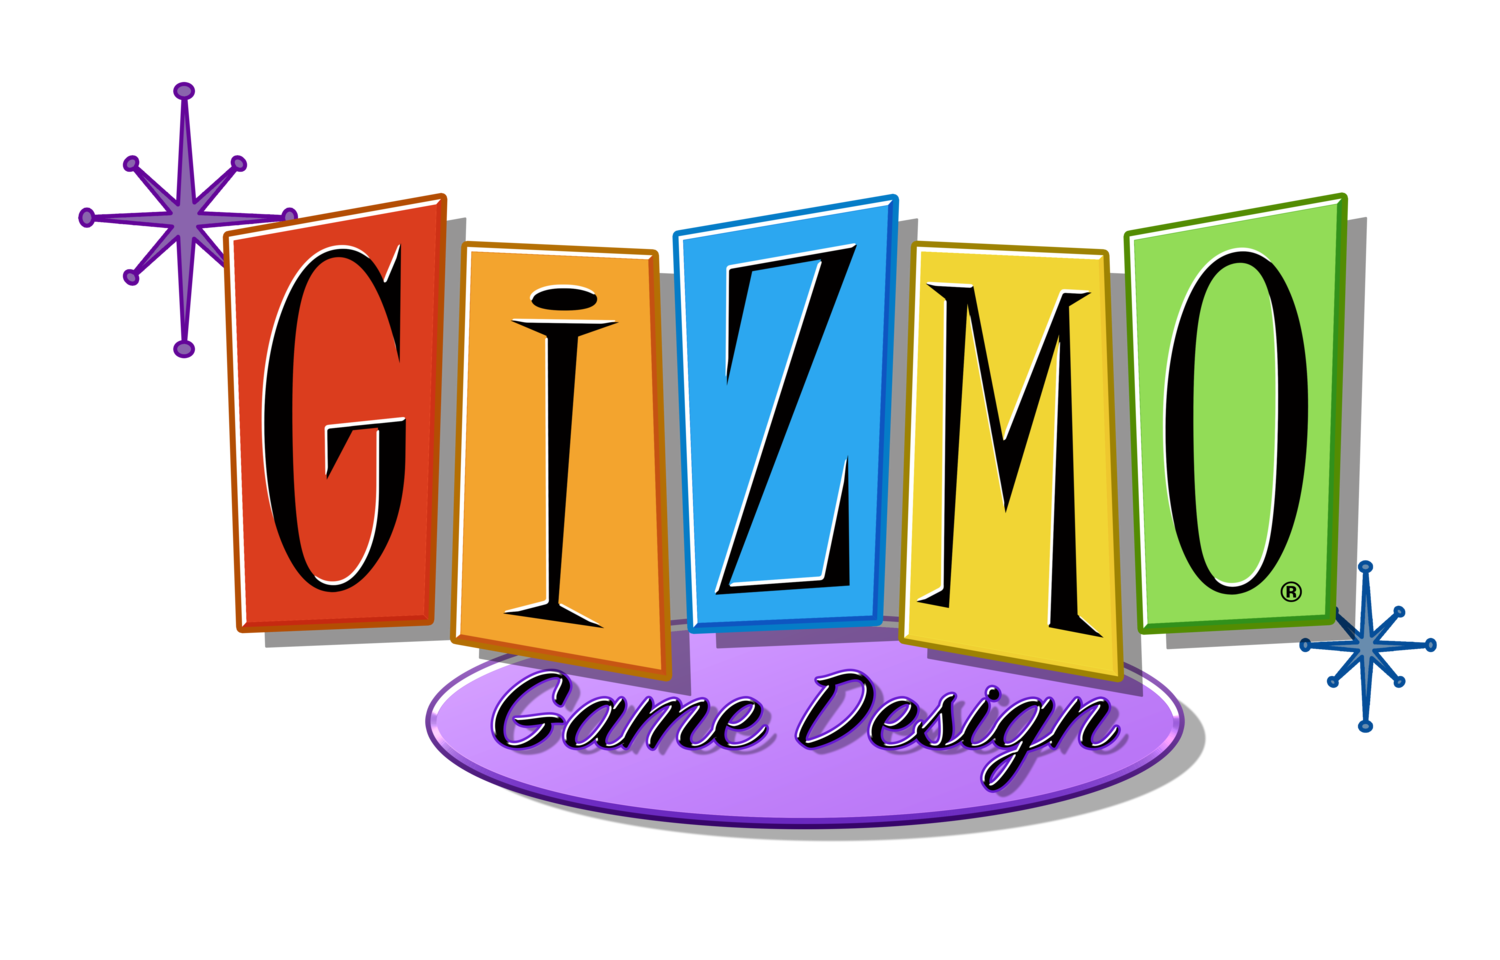 And updates gizmo game. News clipart news update